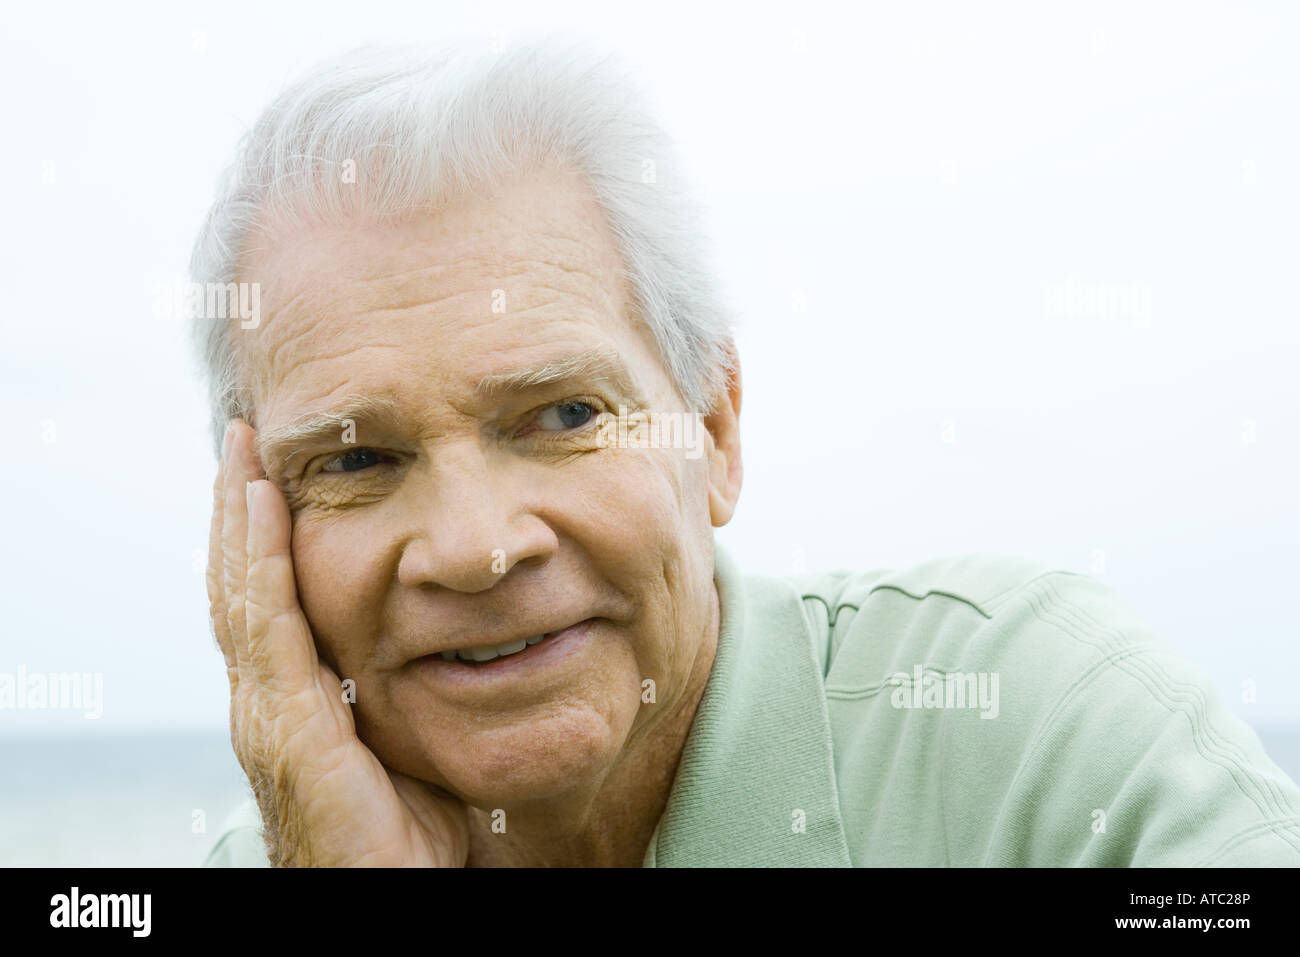 Senior man with hand on cheek, smiling, looking away - Stock Image